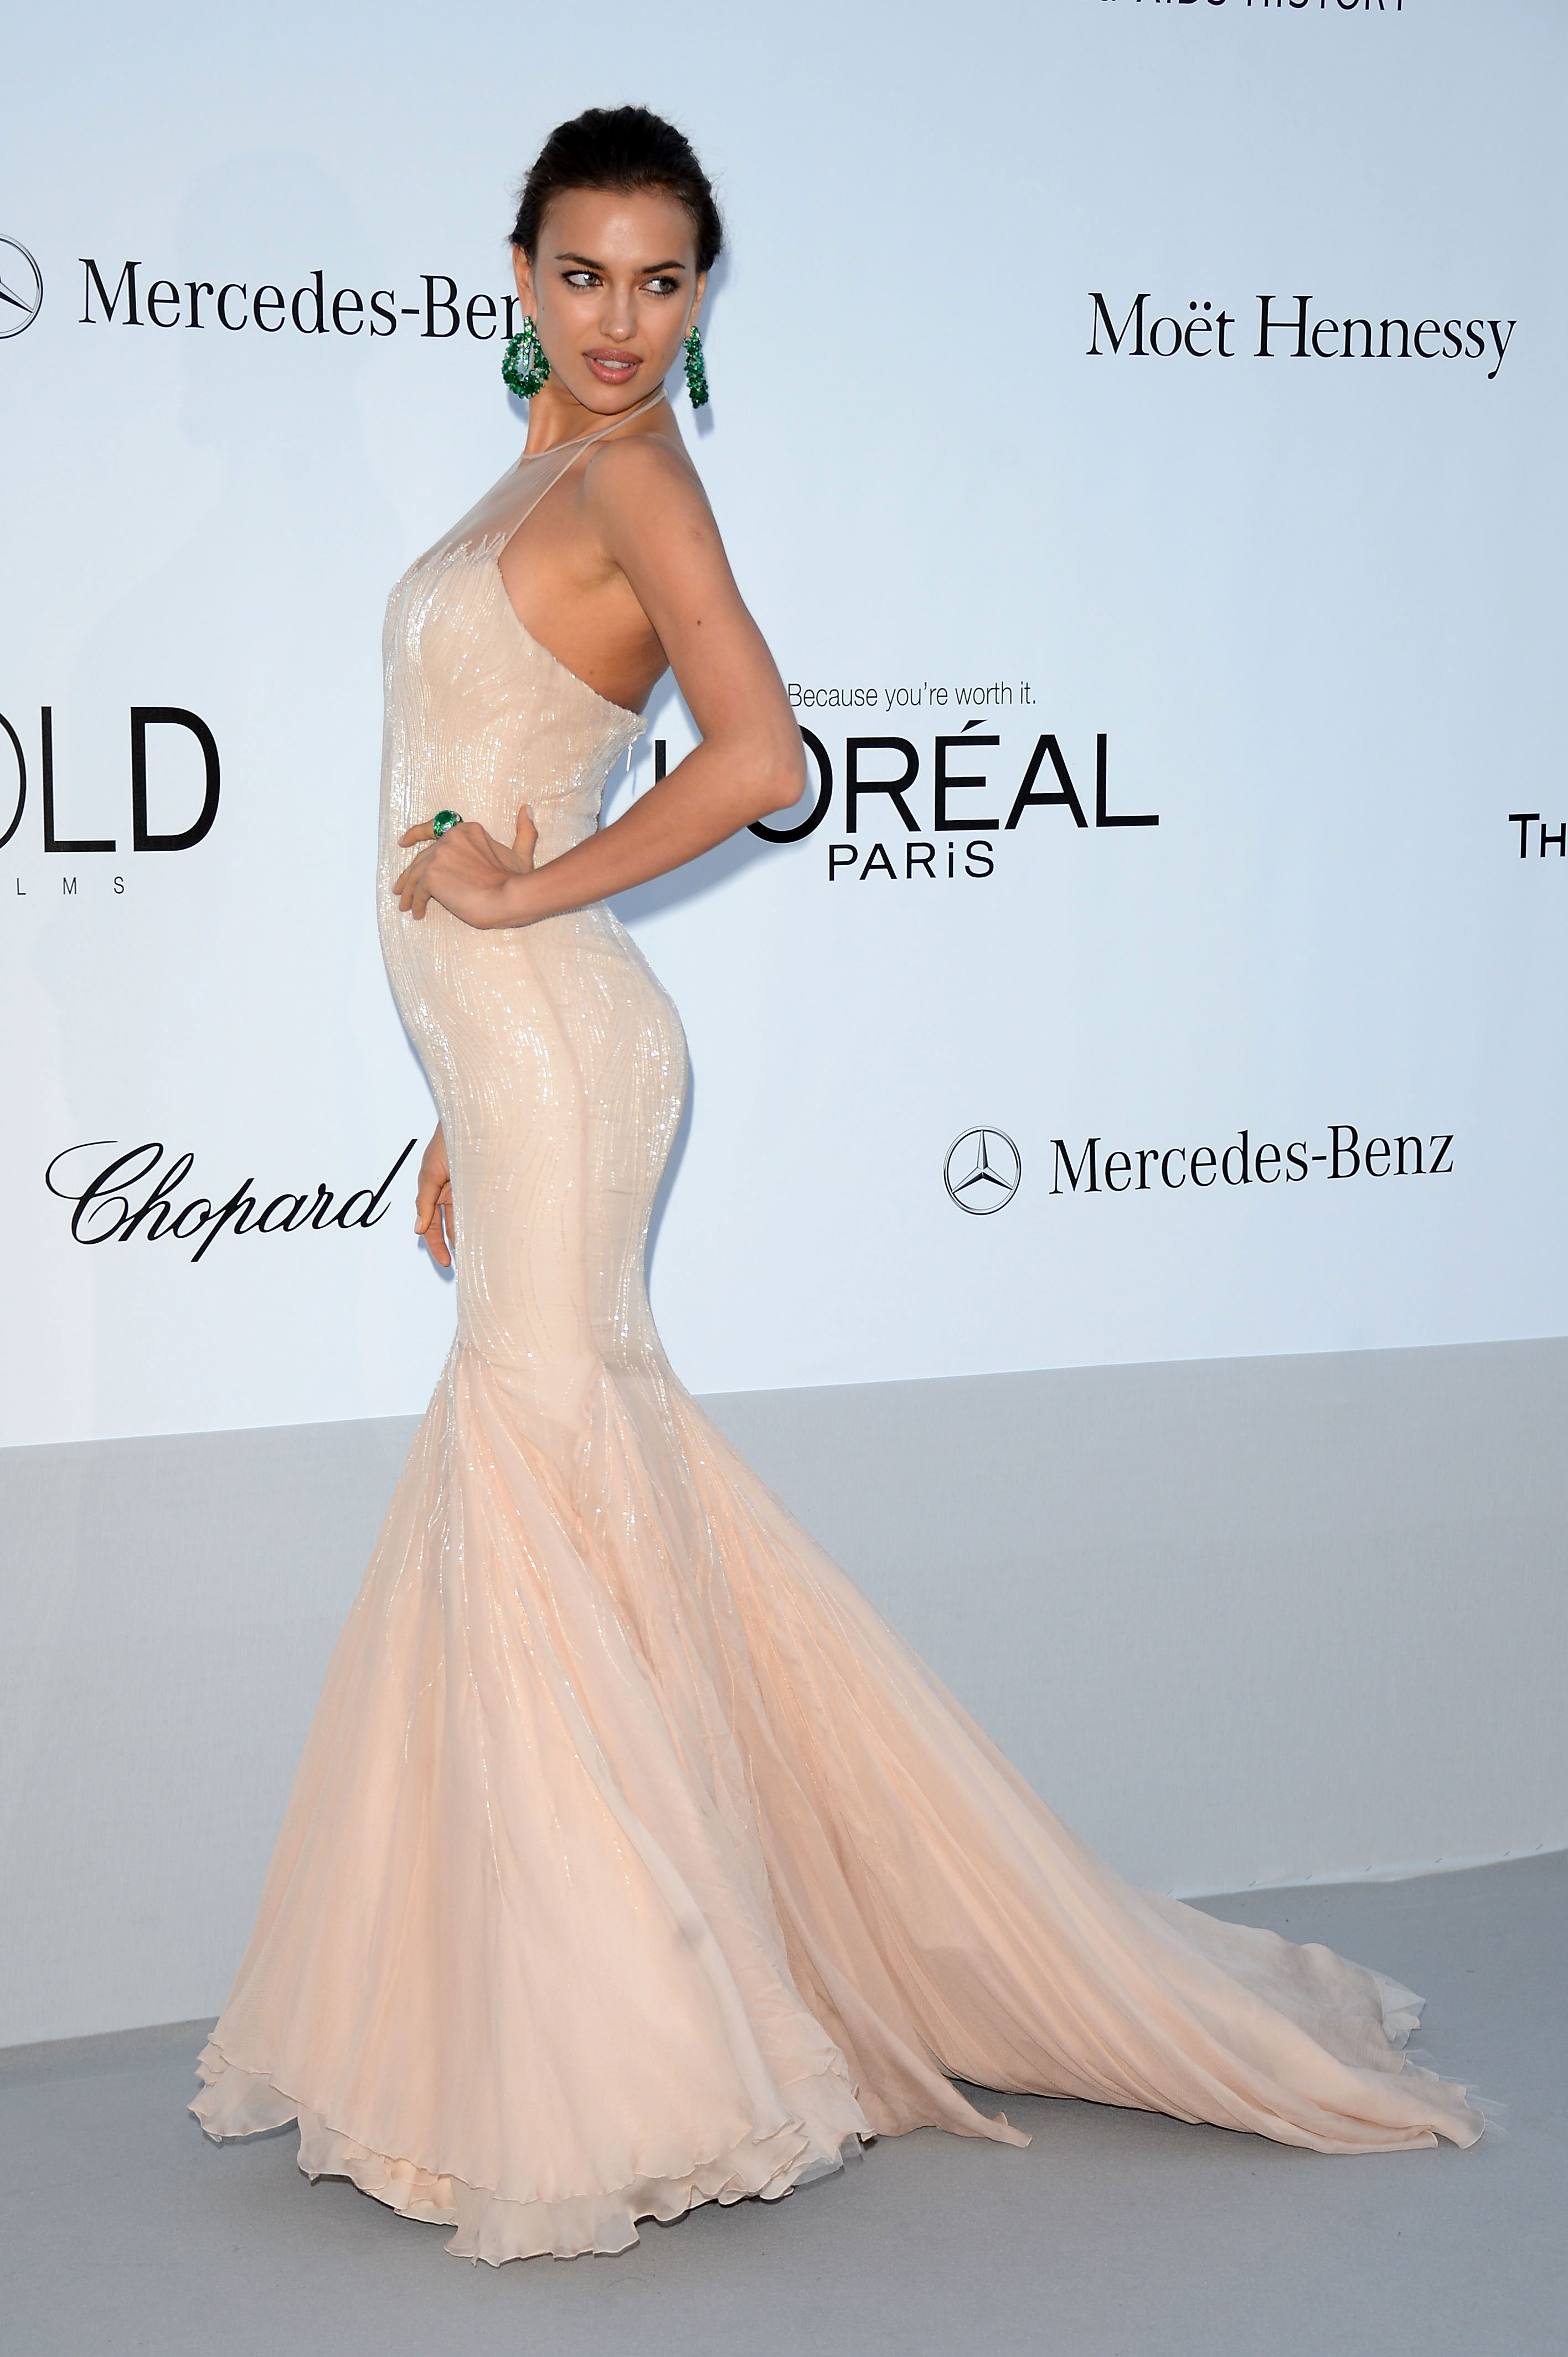 Irina Shayk arrives at 2012 amfAR's Cinema Against AIDS during the 65th Annual Cannes Film Festival.